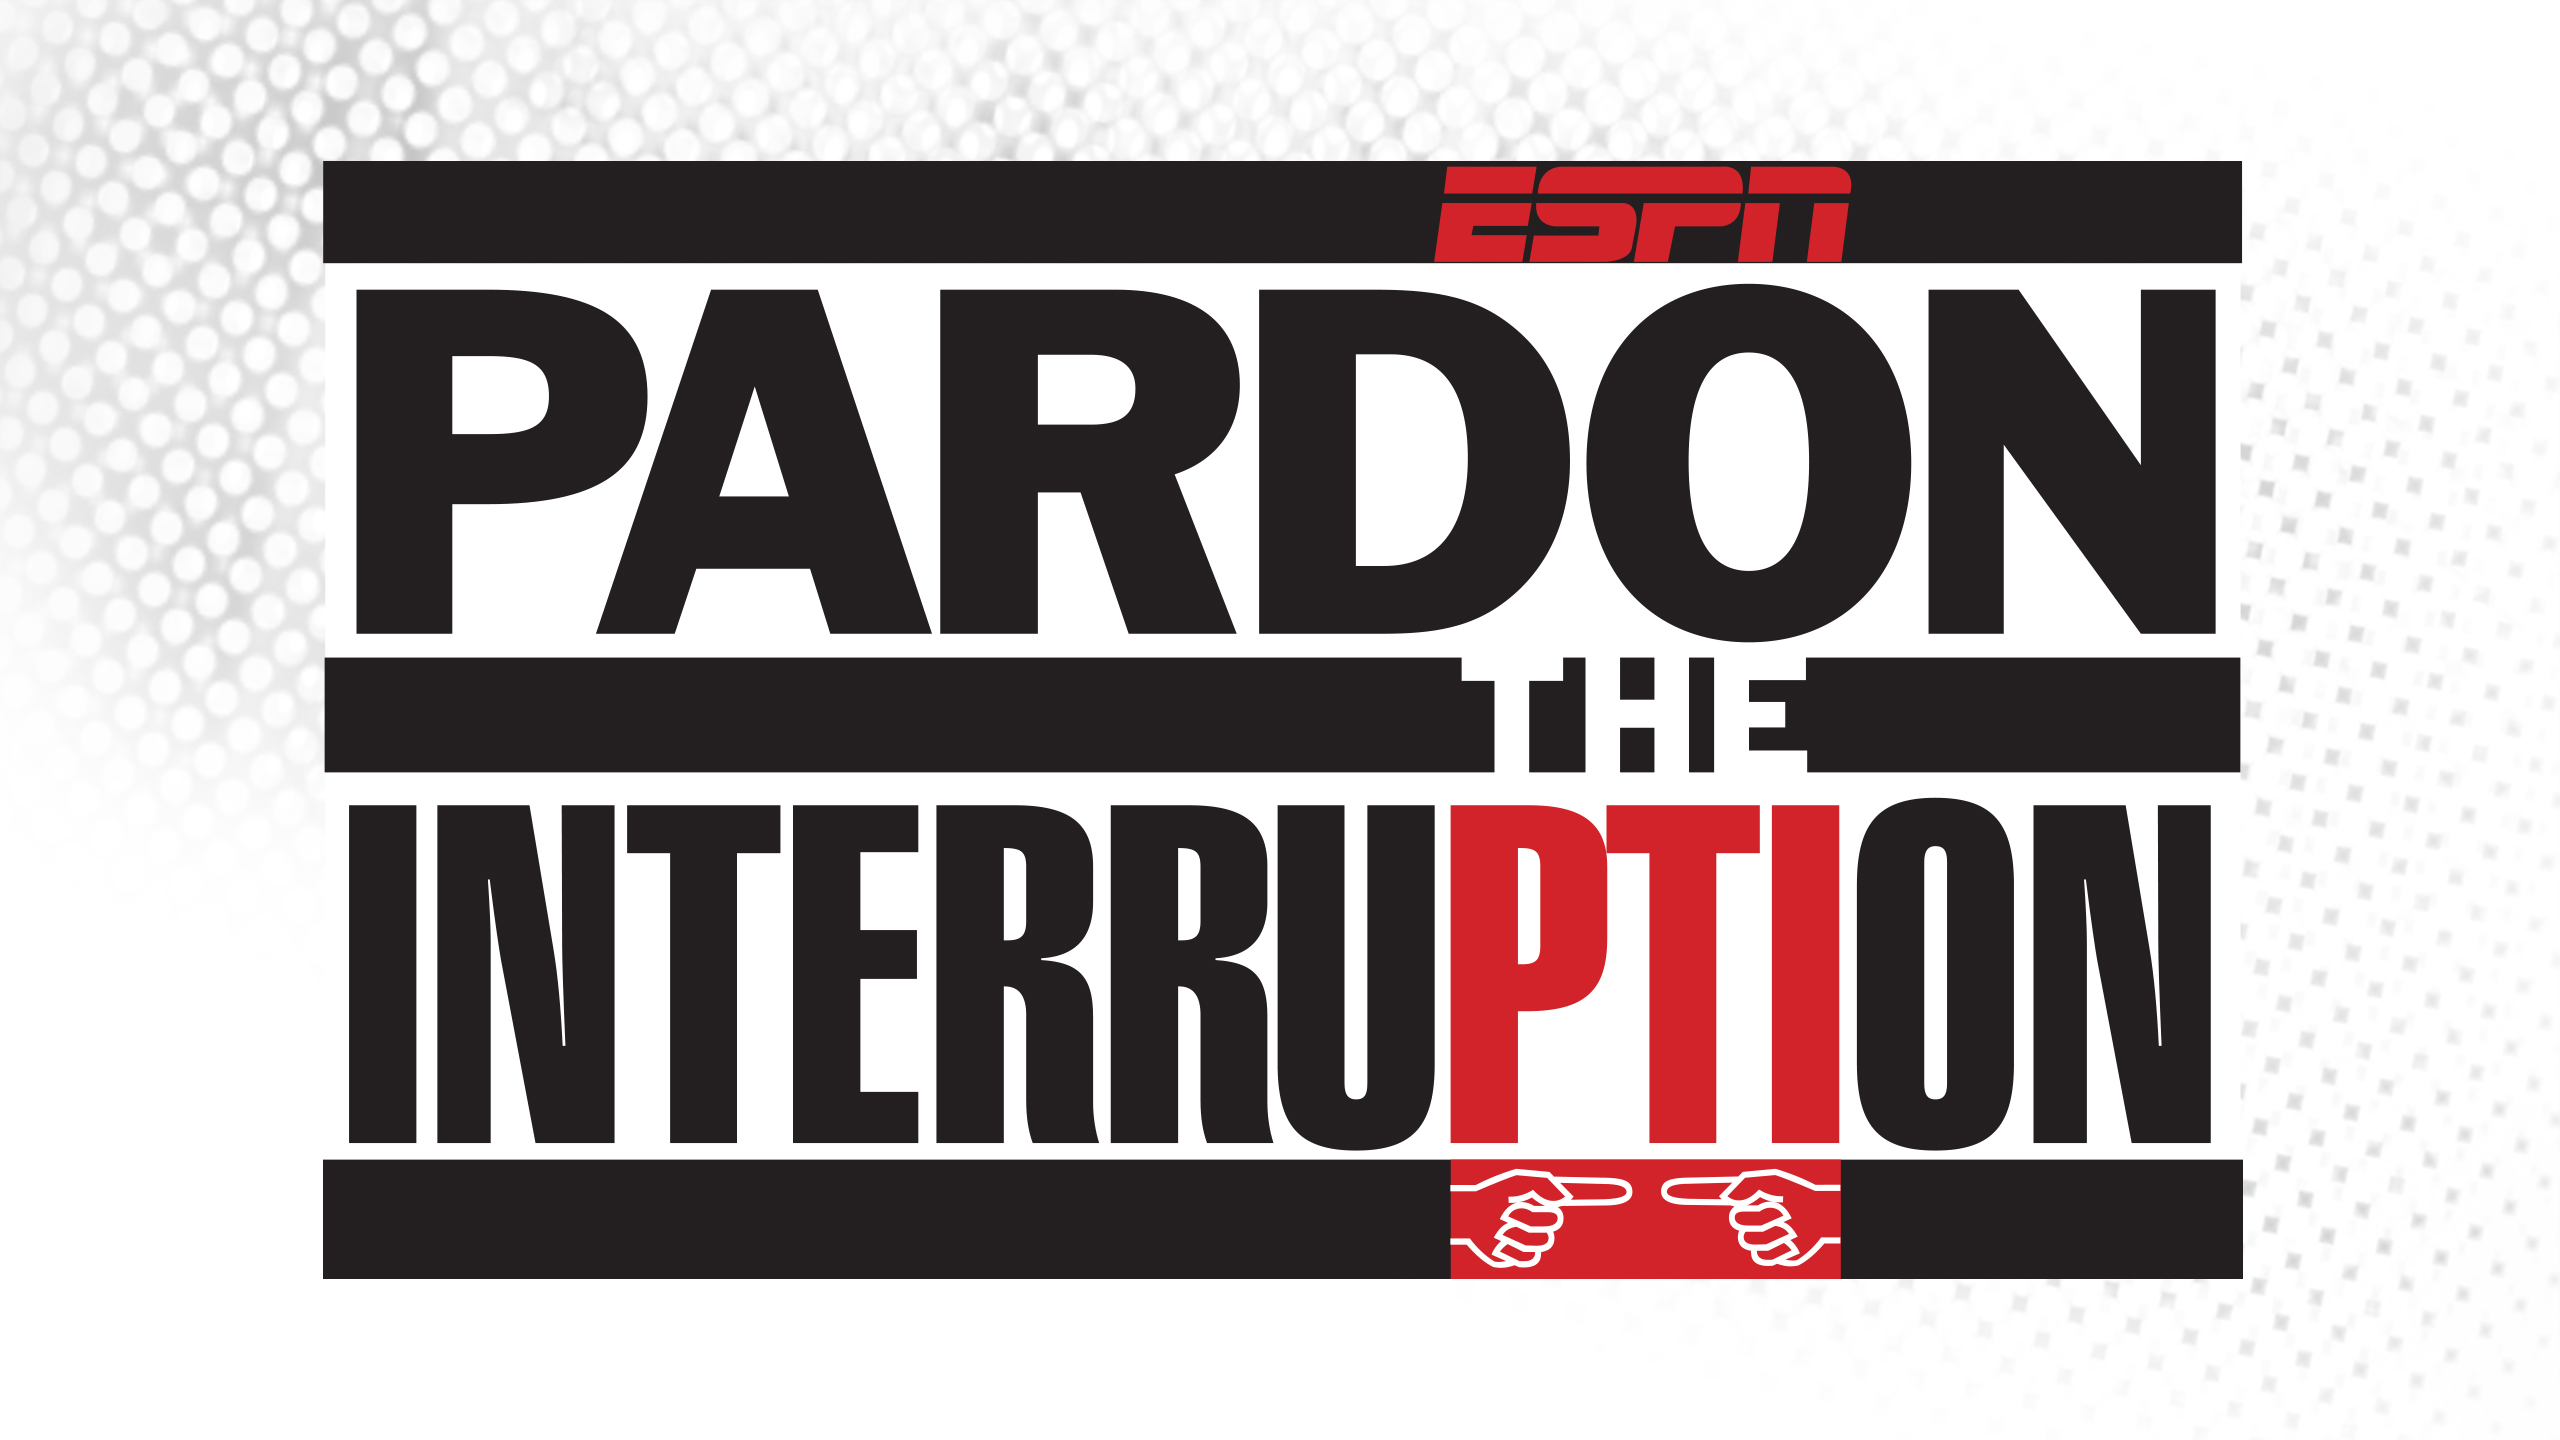 Thu, 1/17 - Pardon The Interruption